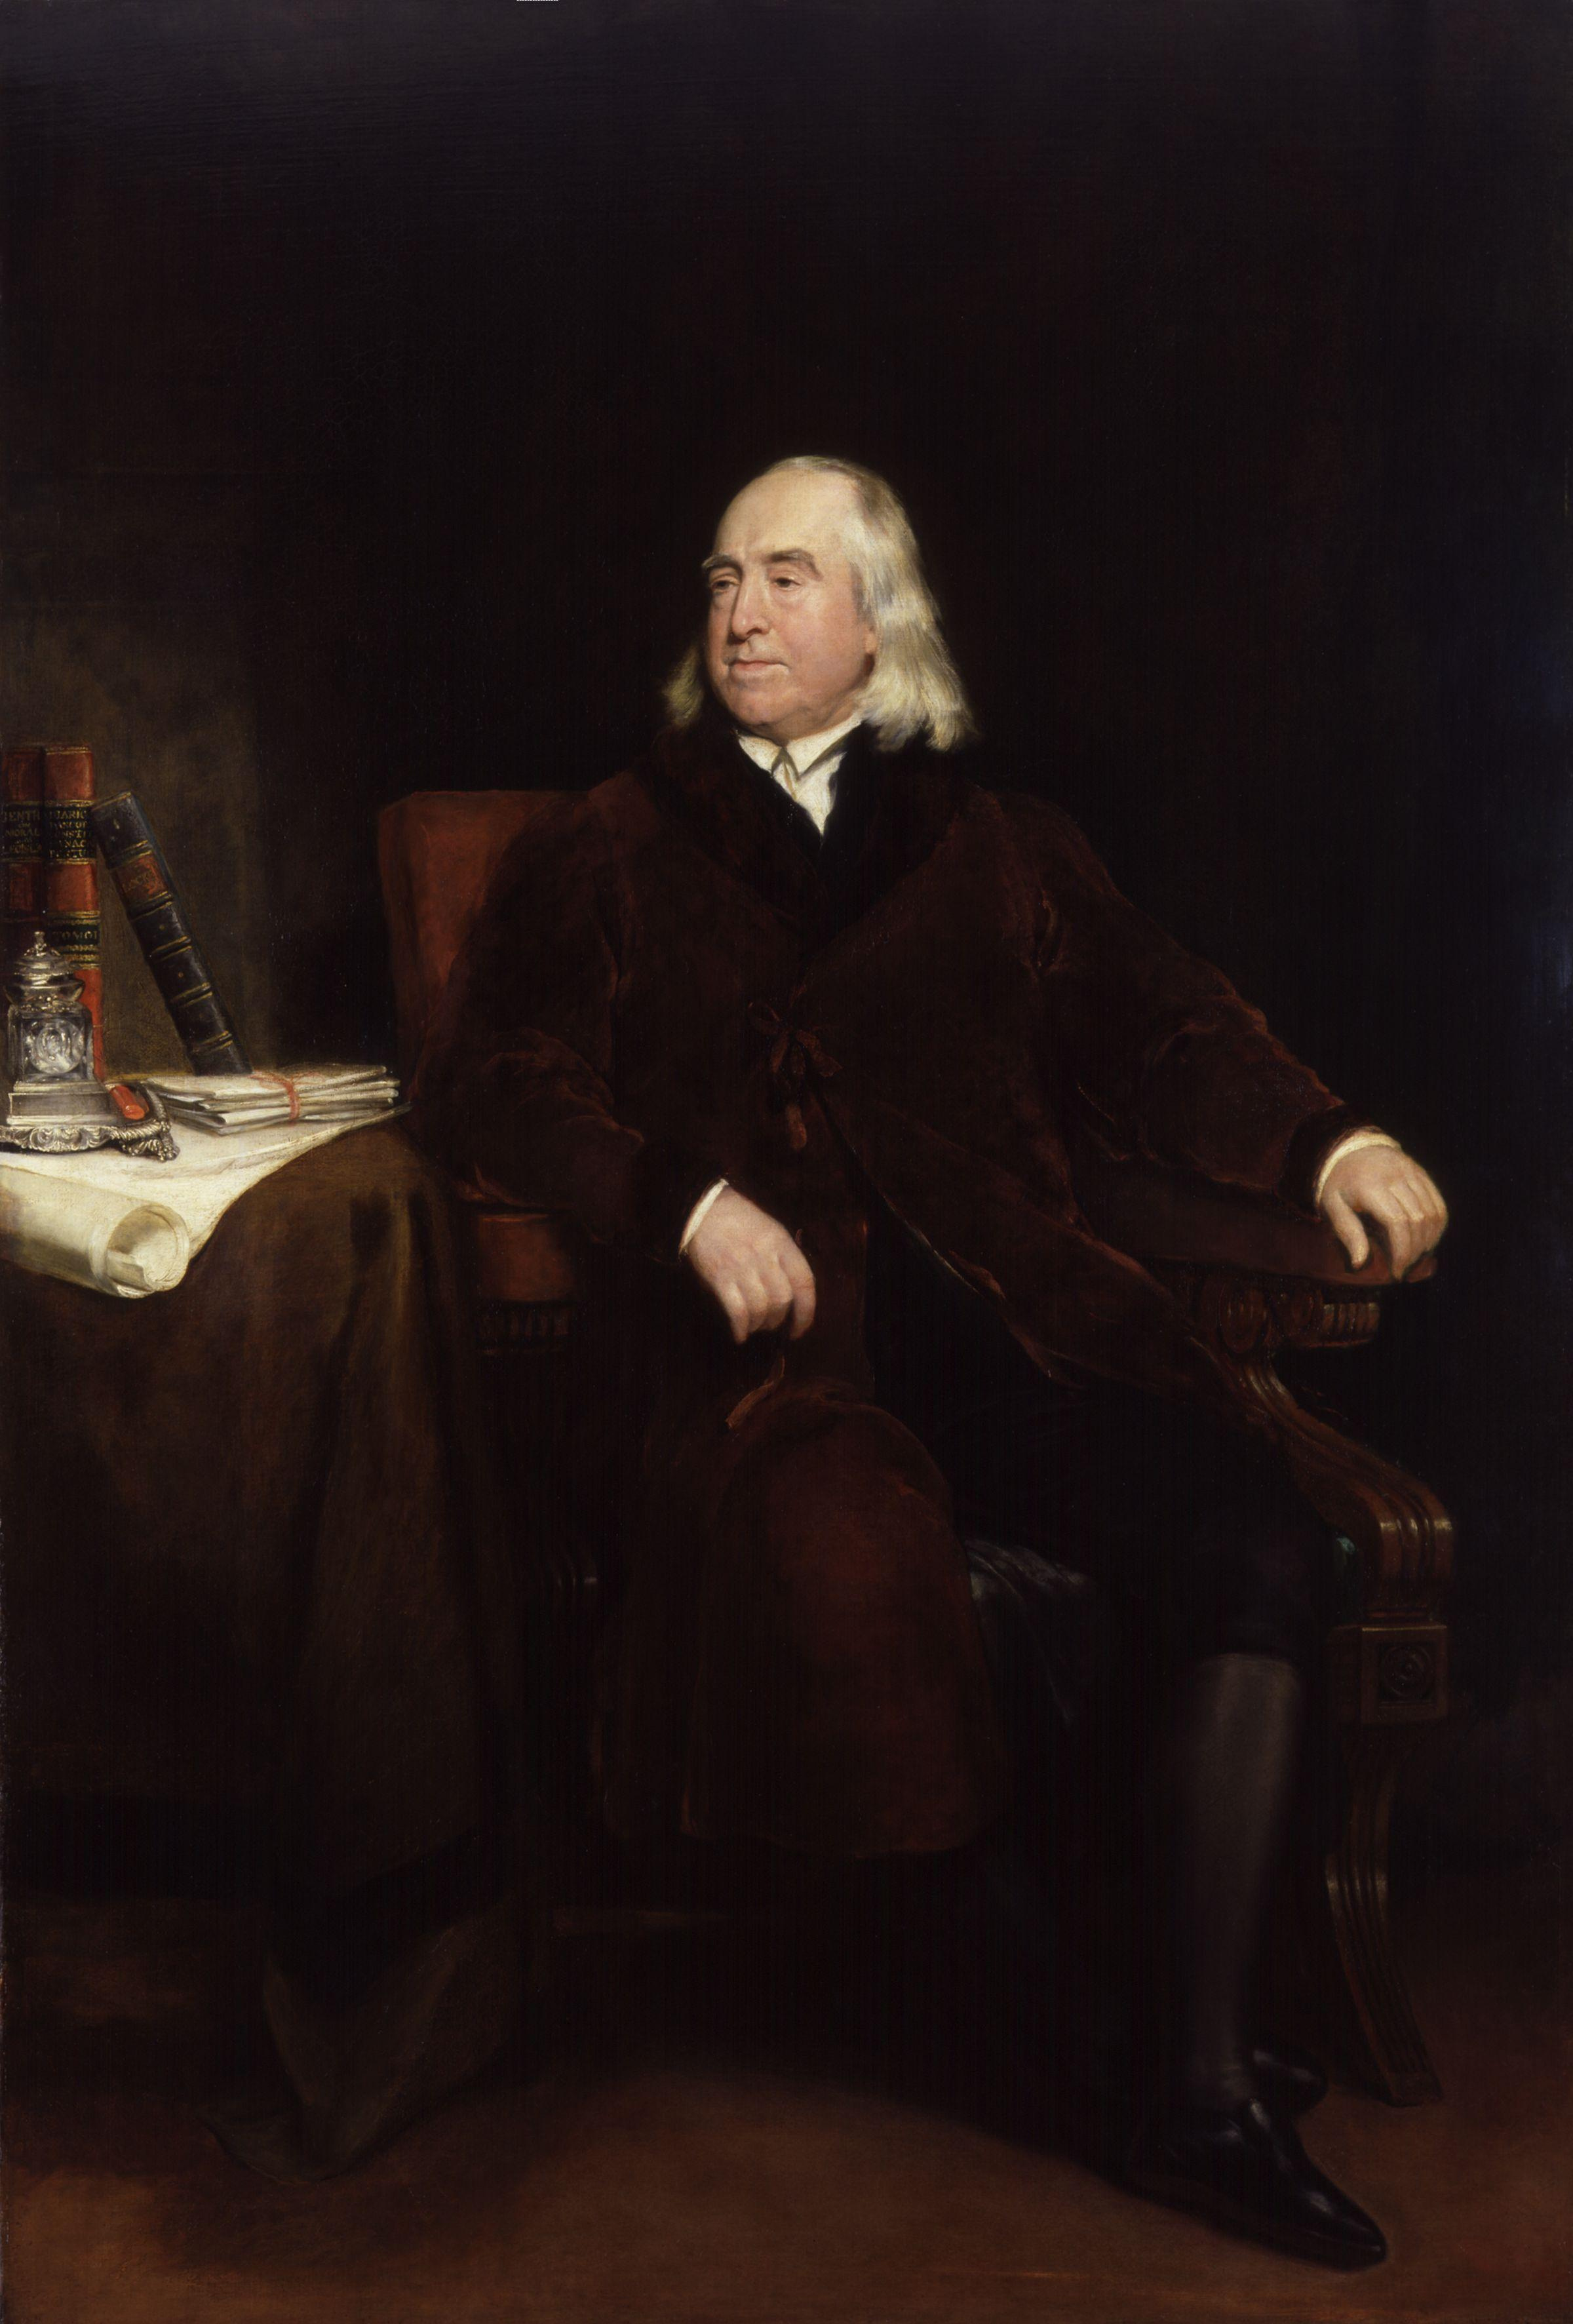 bentham 33 quotes from jeremy bentham: 'the question is not, can they reason nor, can they talk but can they suffer', 'create all the happiness you are able to create remove all the misery you are able to remove.